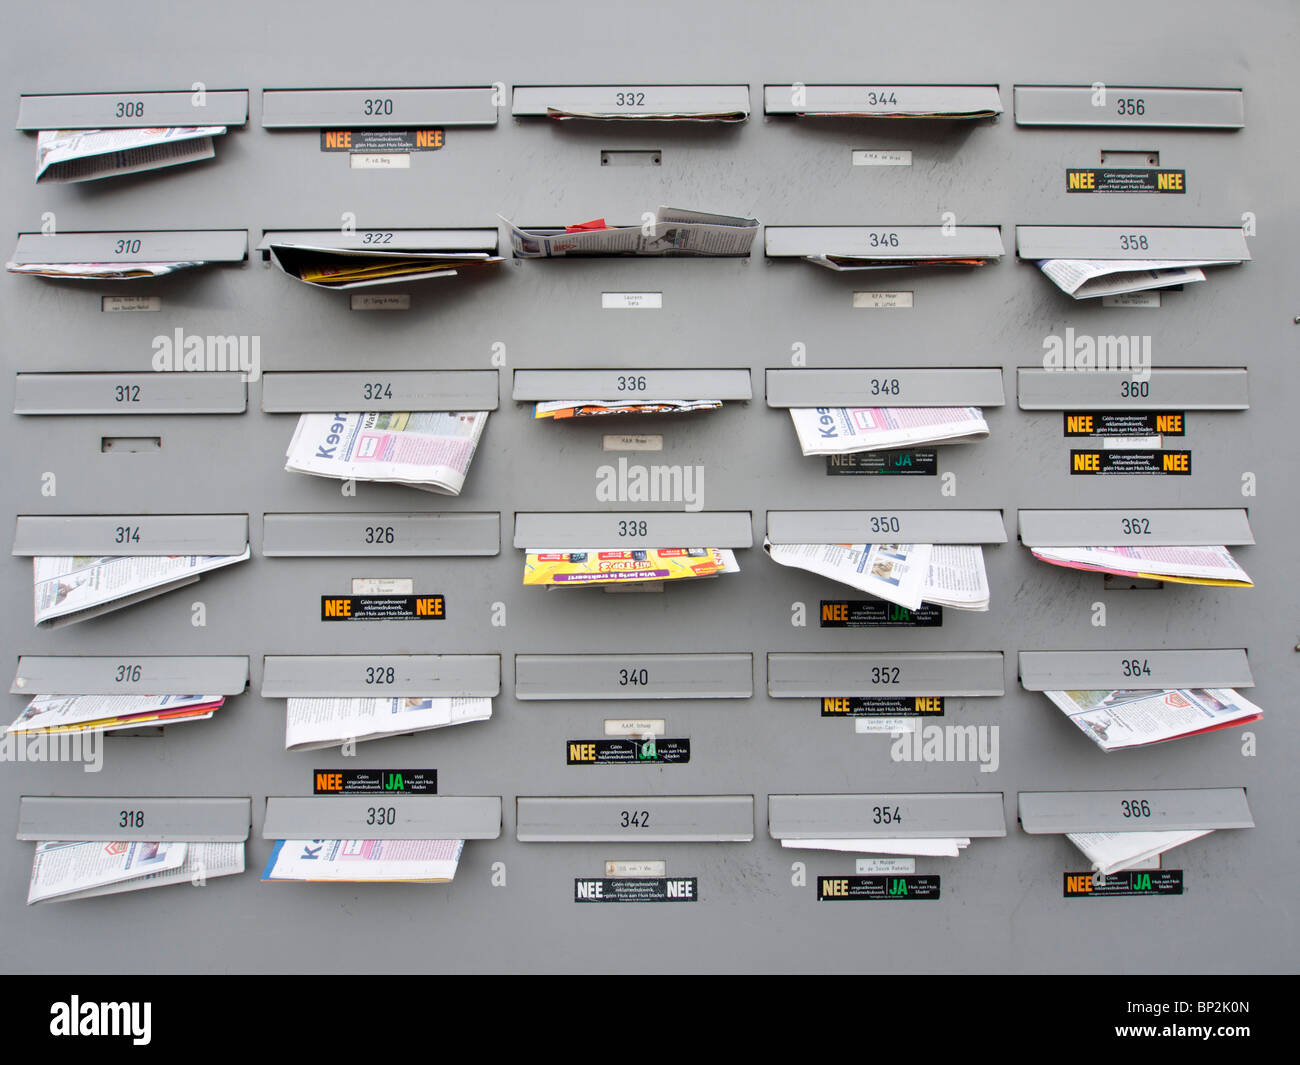 Apartment building letterboxes full of junk mail in Amsterdam The Netherlands - Stock Image